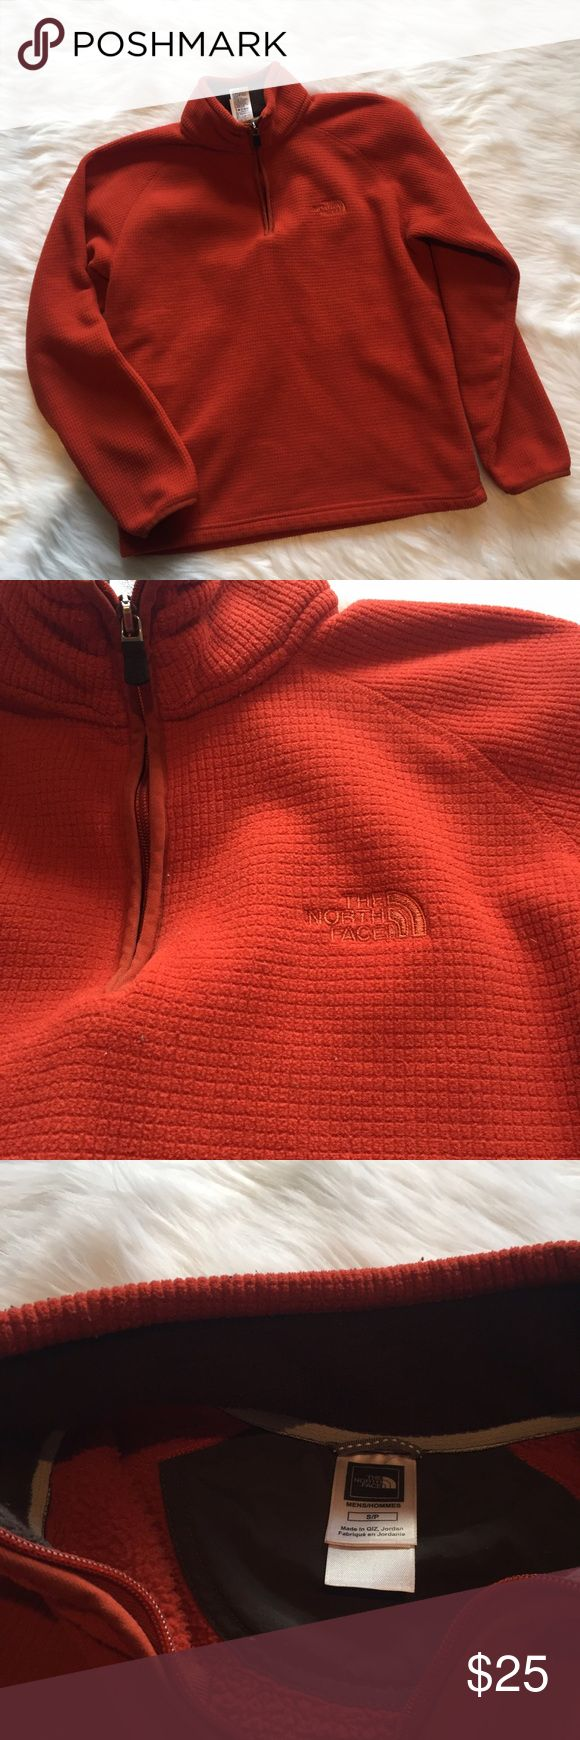 🆕 The North Face Orange Pullover Fleece The North Face Orange Pullover Fleece. Textured. Burnt orange color. Warm and cozy. Could be worn as a women's fleece. Great used condition, no pilling. **Smoke free home. Ask questions. Bundle to save both on shipping and total price. Serious and reasonable offers only (no more than 10% of listing price). Not interested in trades ATM. Sharing is caring!** The North Face Shirts Sweatshirts & Hoodies